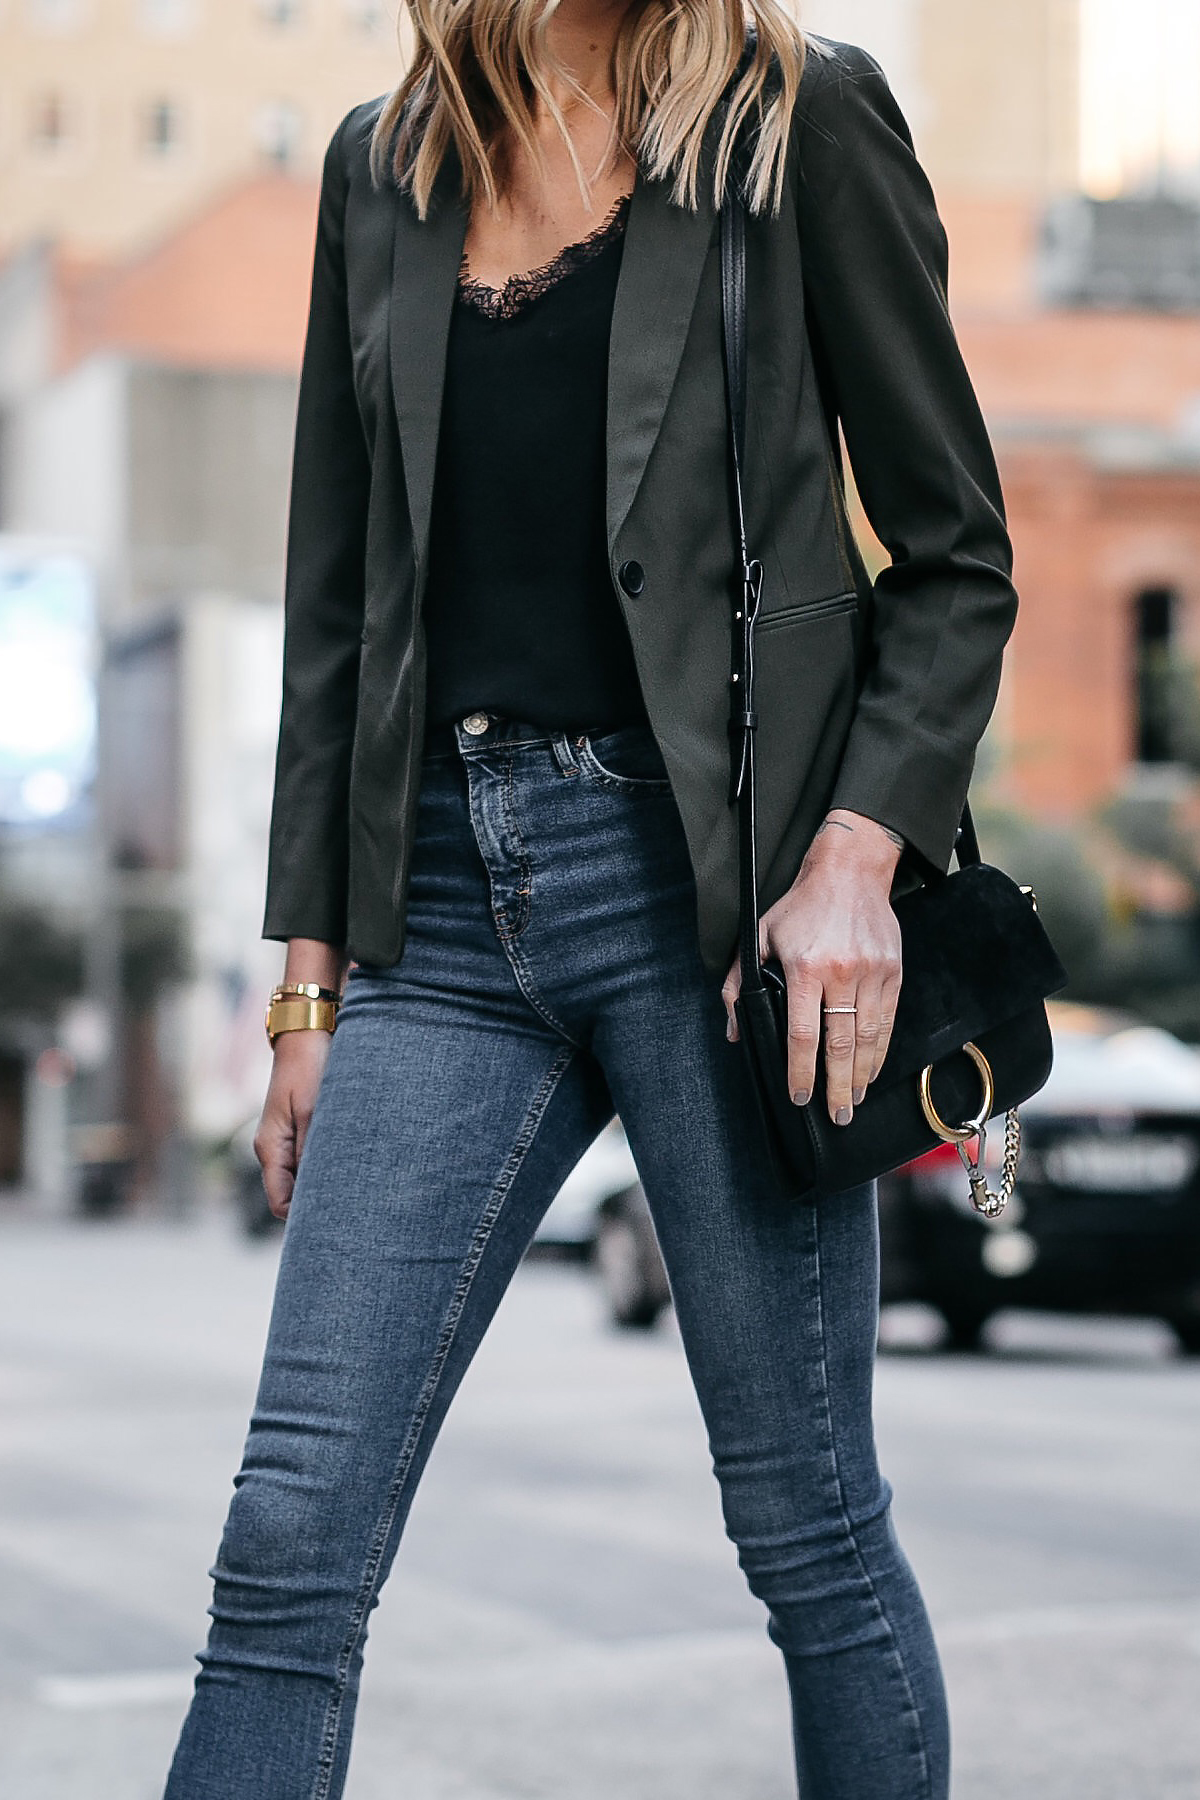 Everlane Olive Green Blazer Anine Bing Black Lace Cami Topshop Denim Skinny Jeans Chloe Faye Black Handbag Fashion Jackson Dallas Blogger Fashion Blogger Street Style